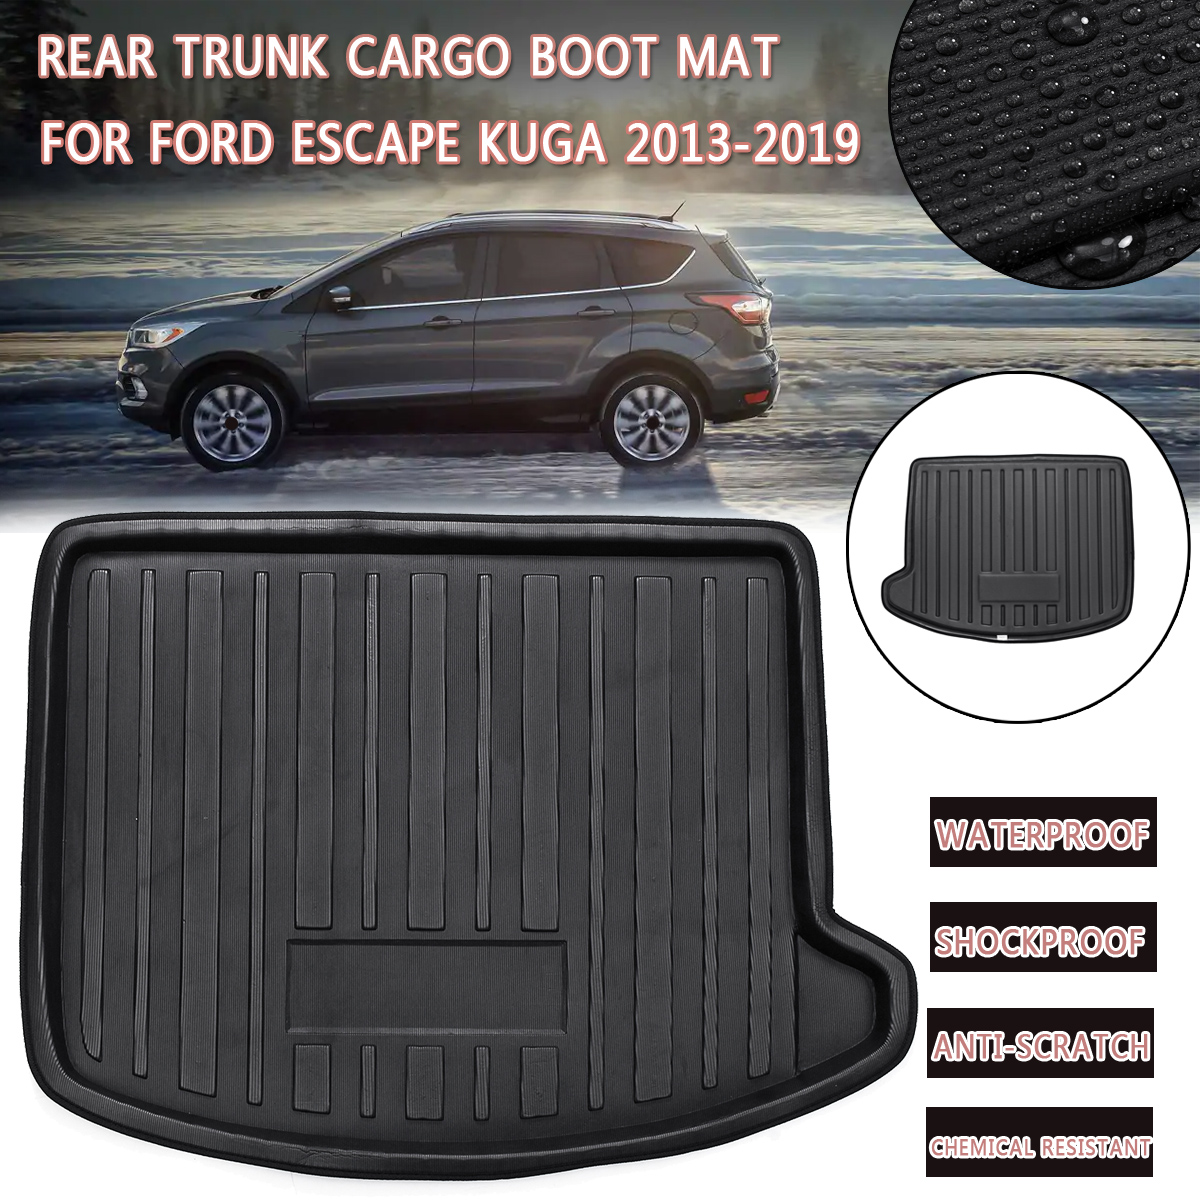 Fit For Ford Escape Kuga 2013 Boot Mat Rear Trunk Liner Cargo Floor Tray Carpet